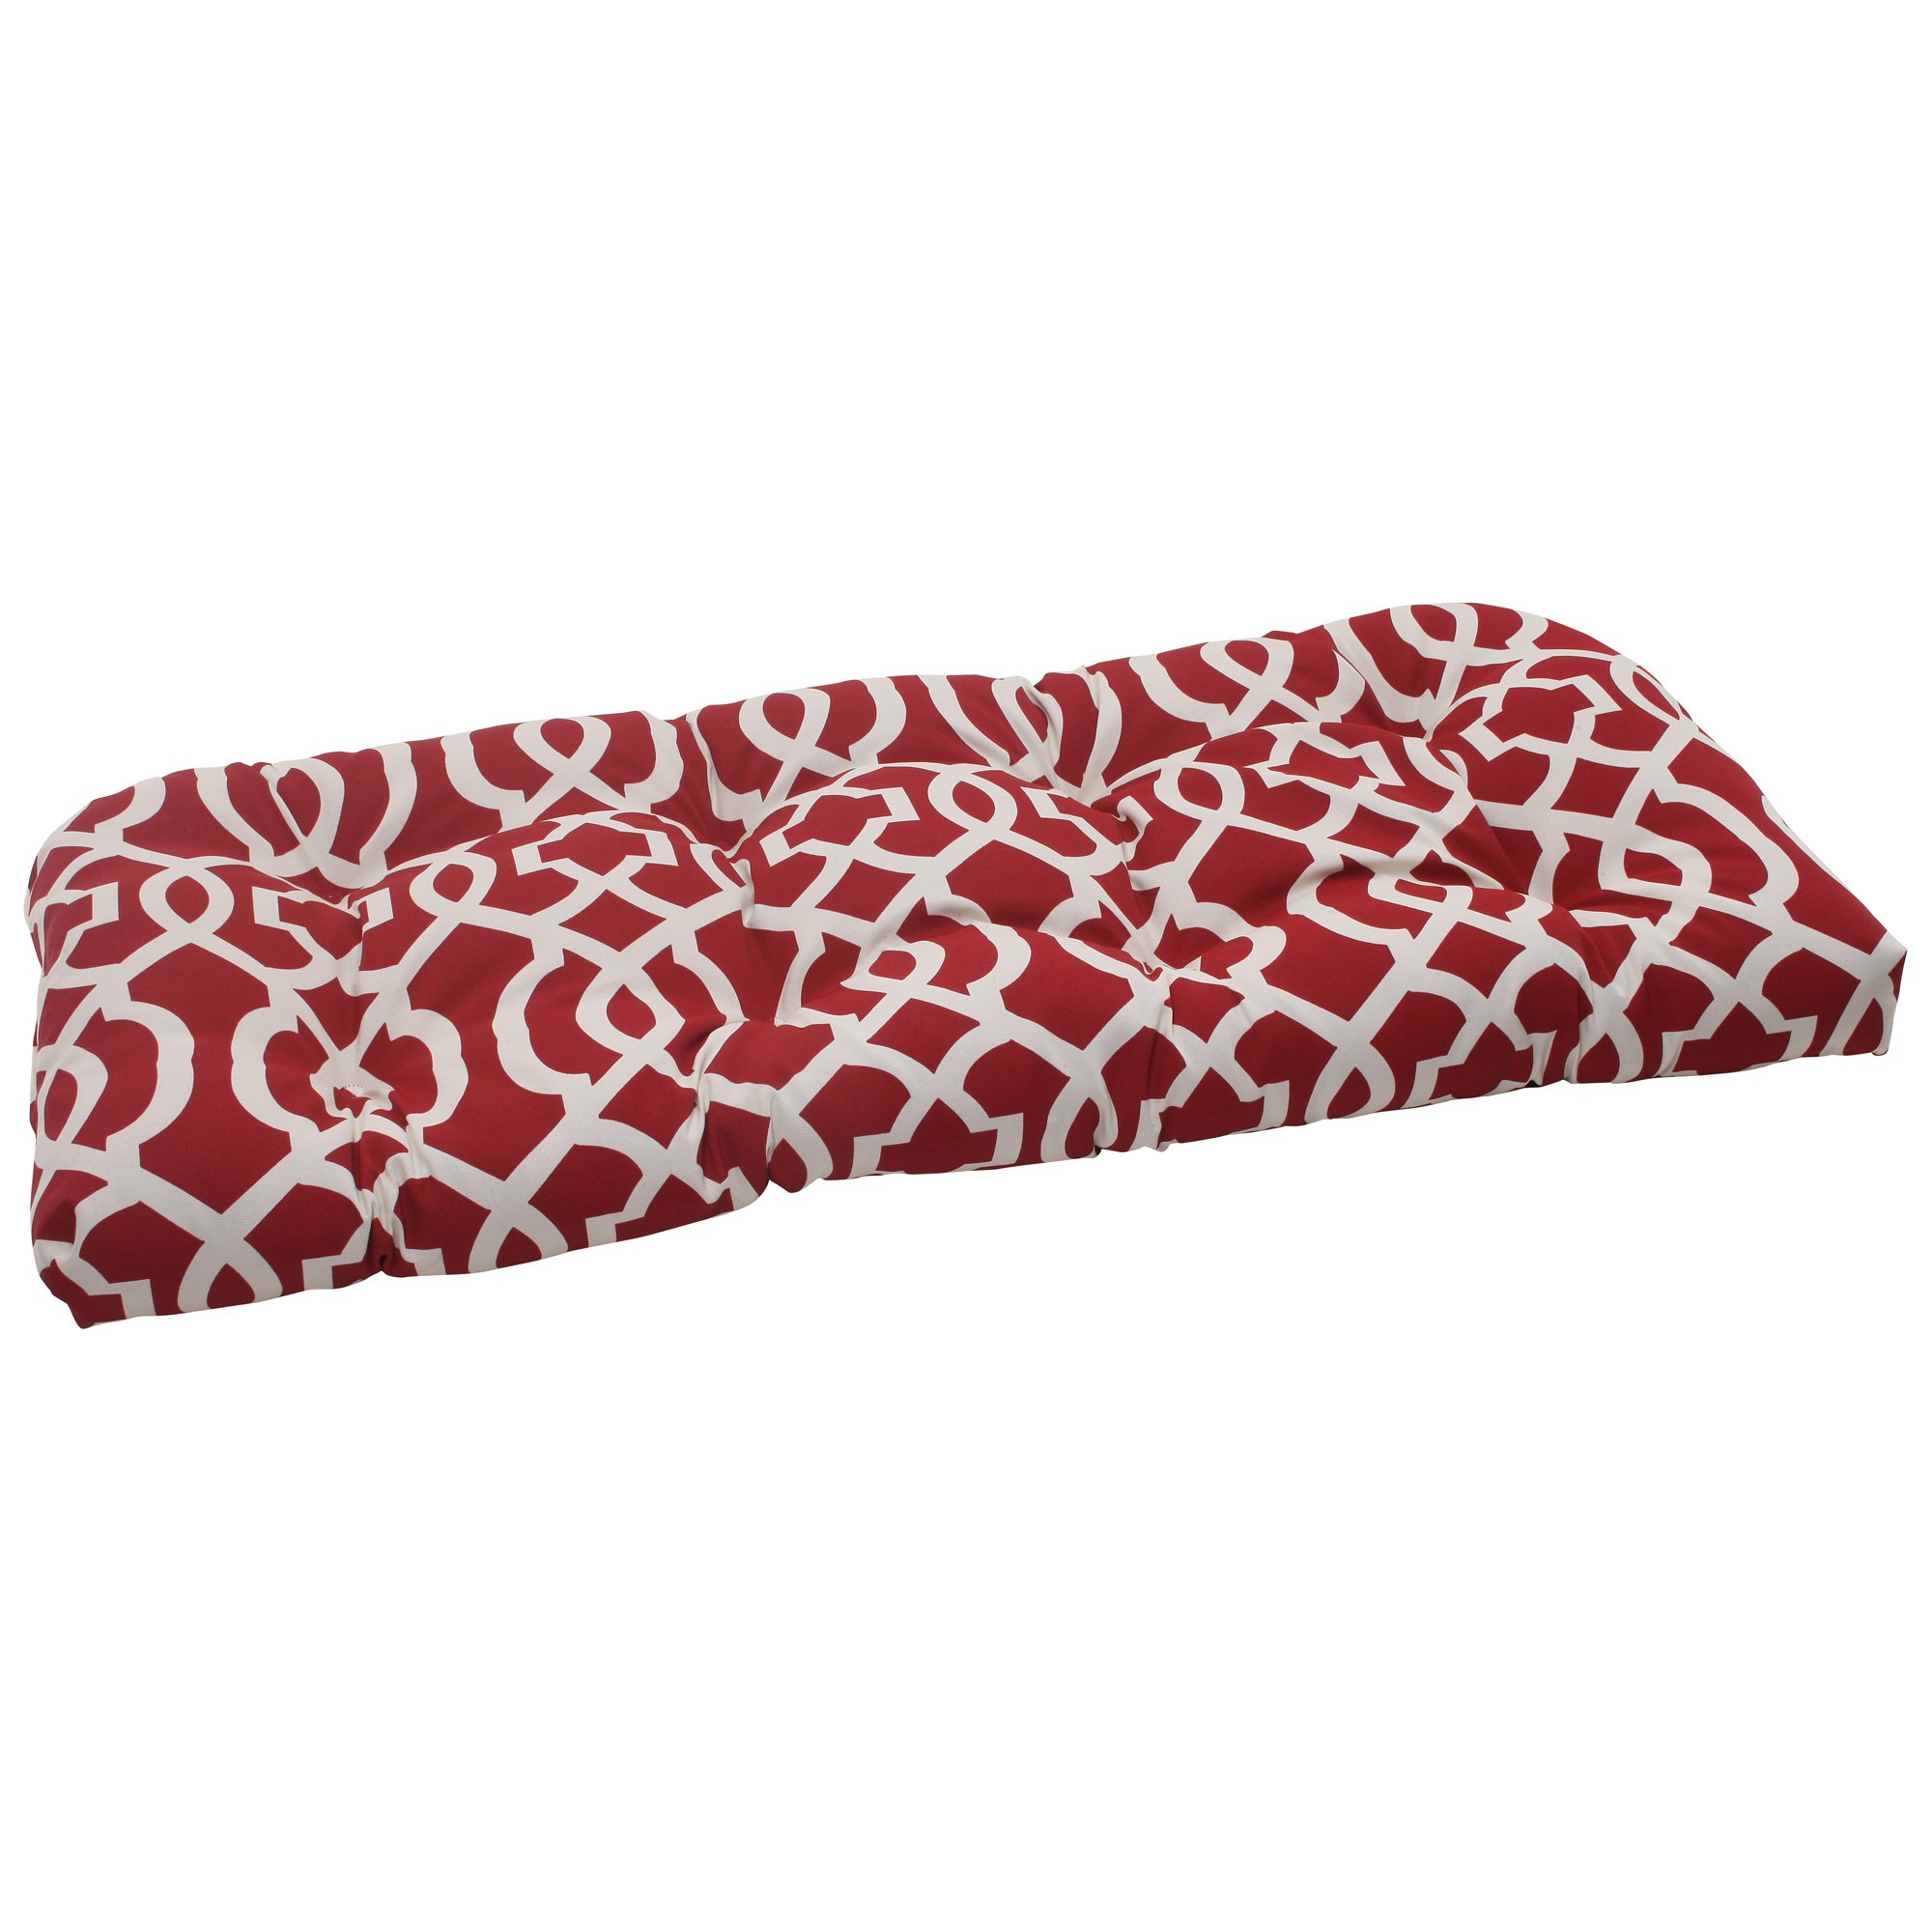 Pillow Perfect Outdoor New Geo Wicker Loveseat Cushion, Red